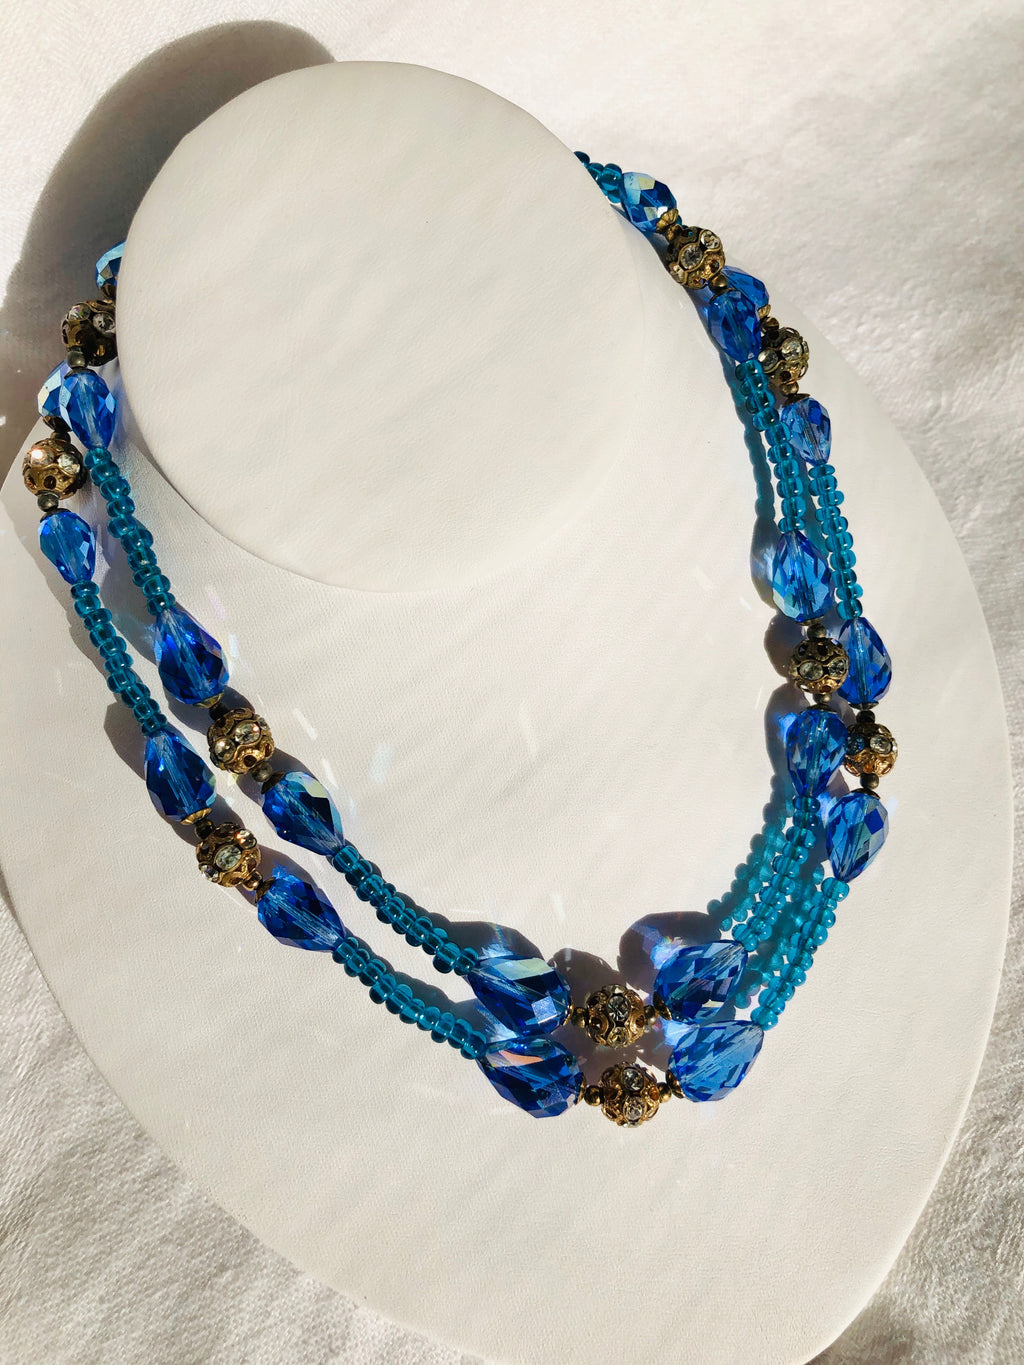 Double Strand Ocean Bead Necklace